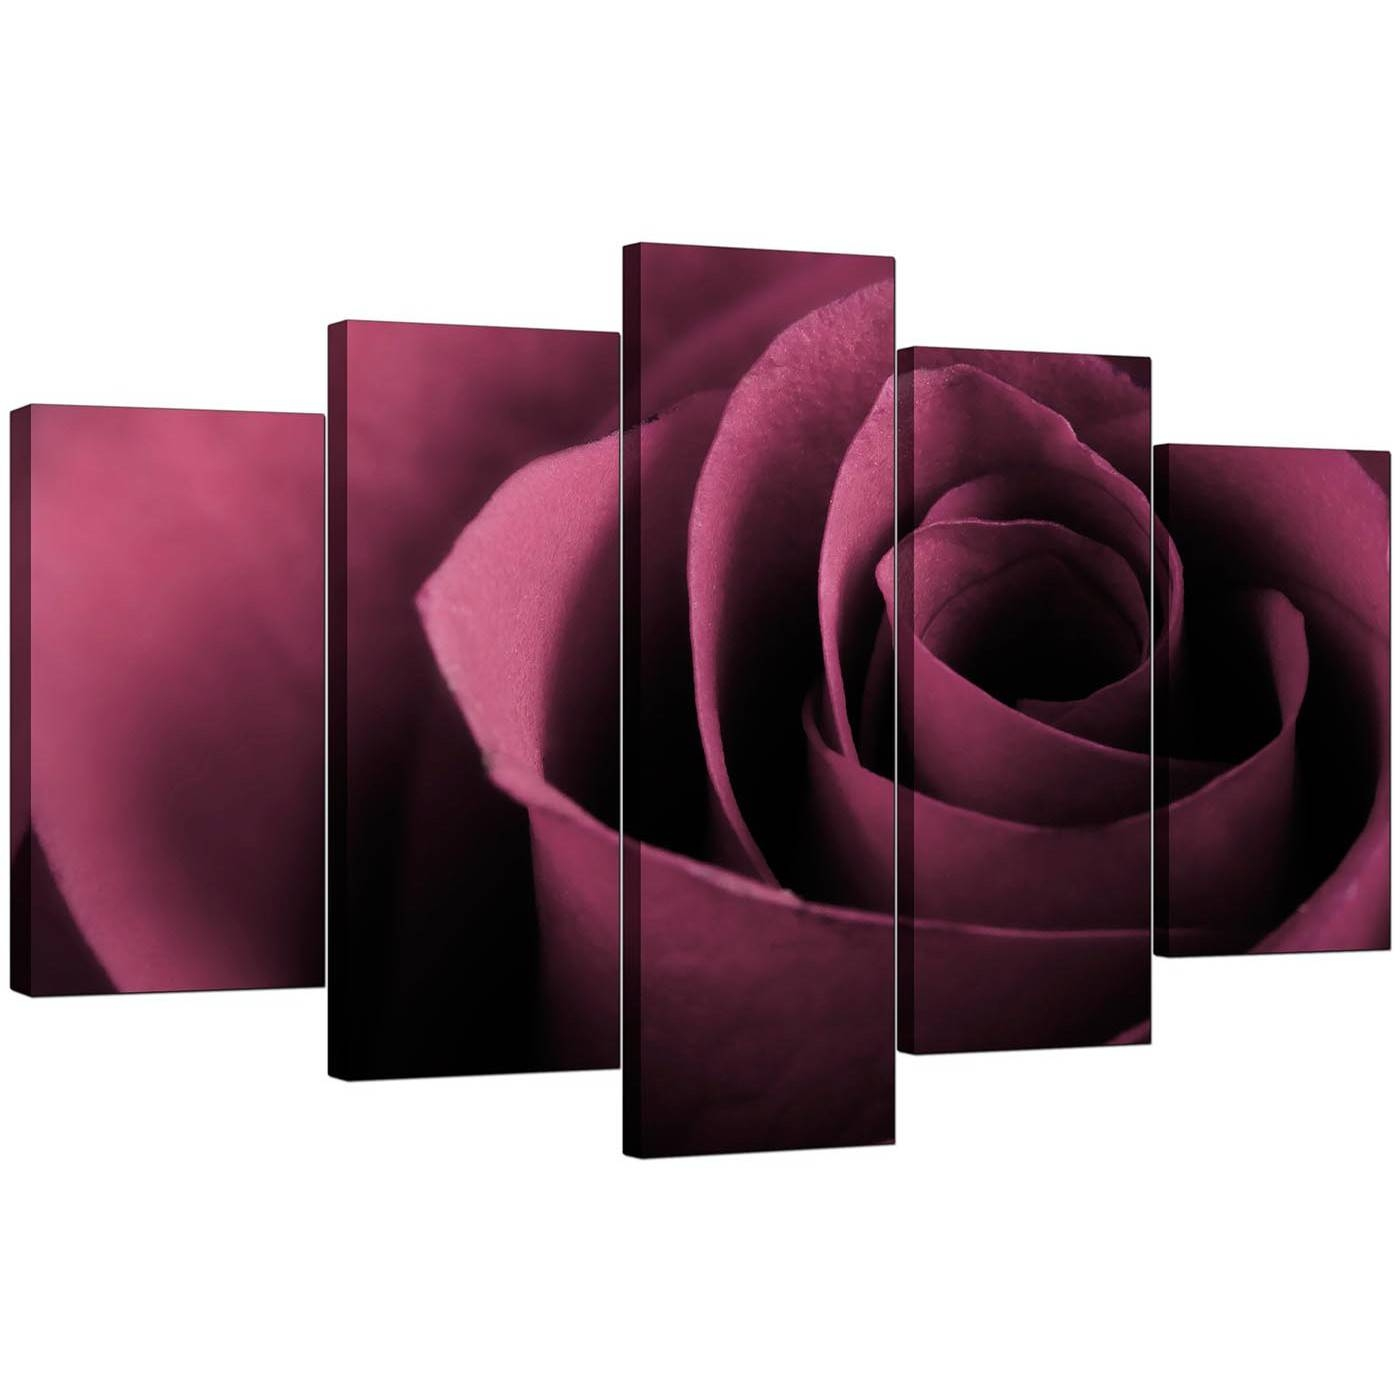 Extra Large Rose Canvas Wall Art Five Piece In Plum Intended For 2017 Plum Wall Art (View 8 of 20)